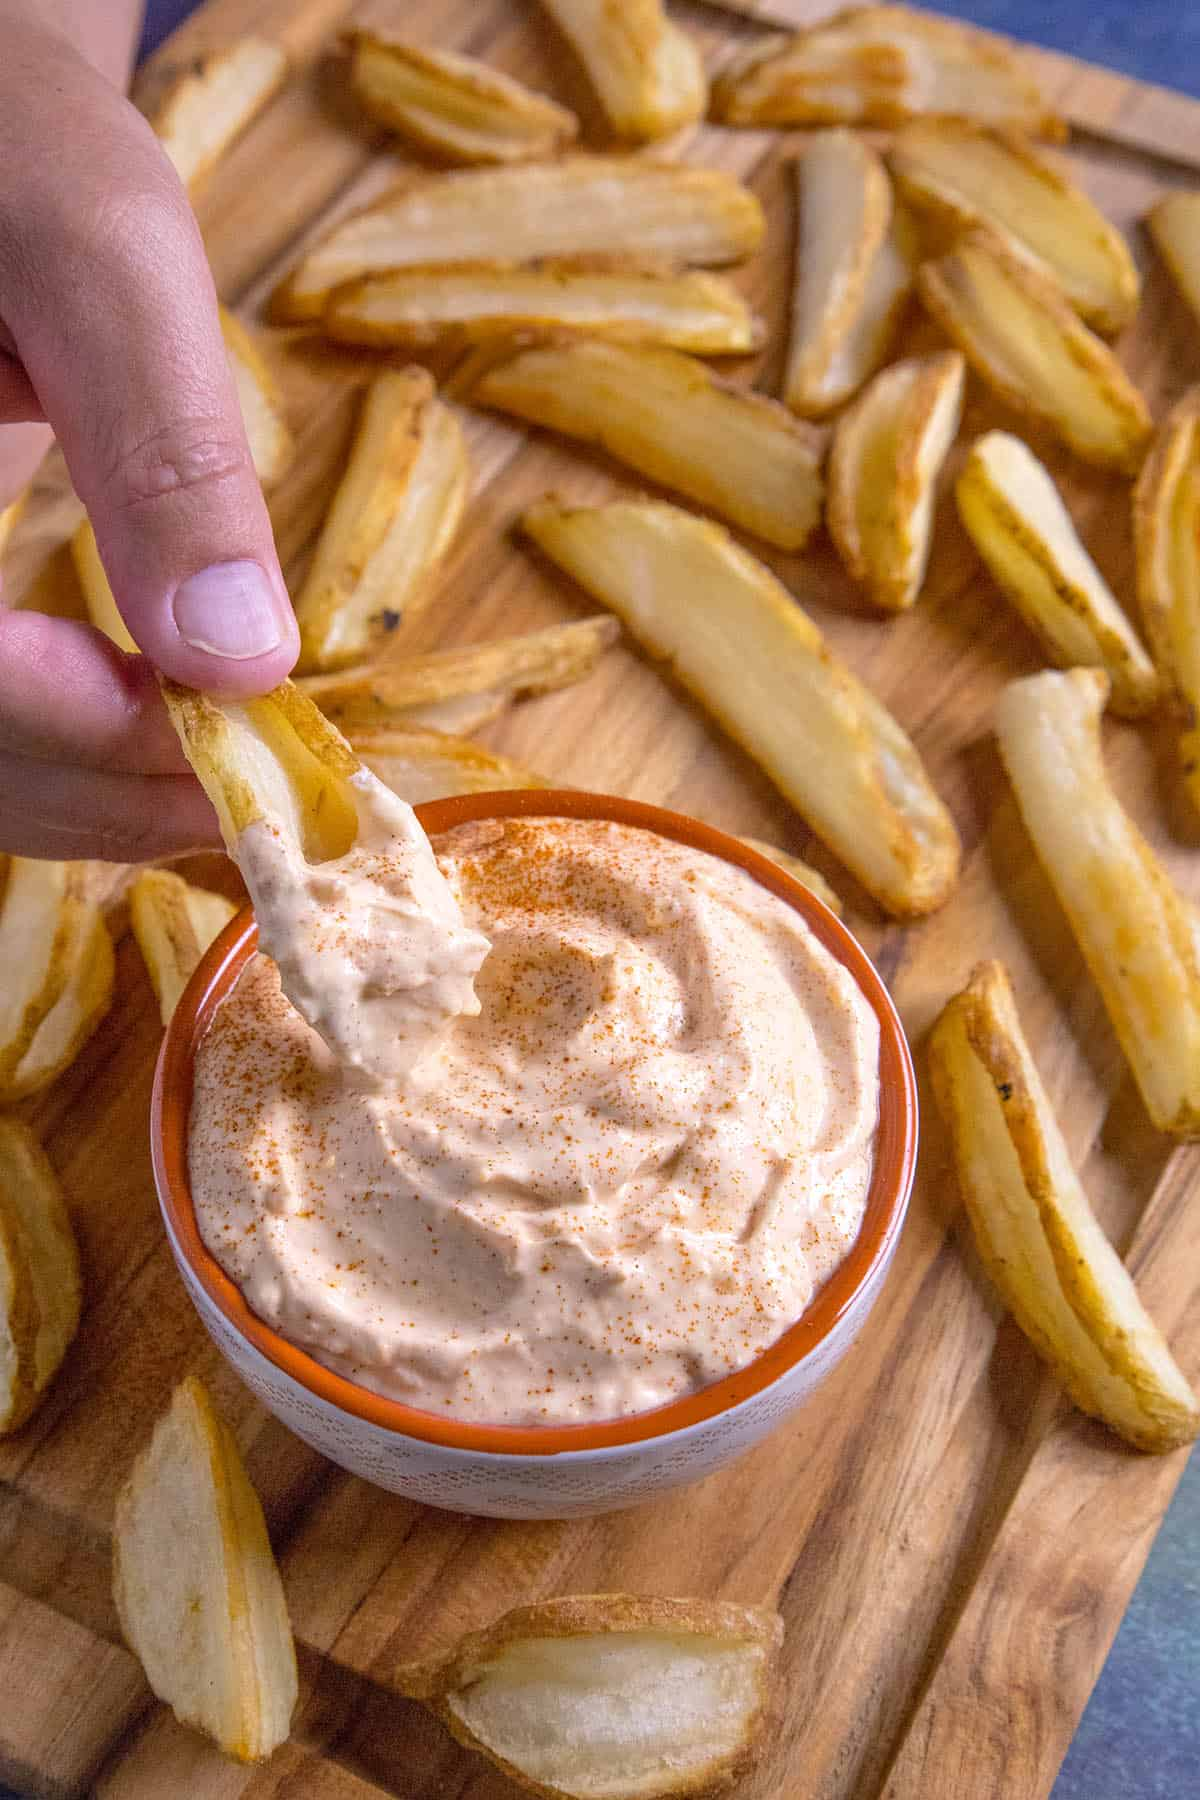 Dipping into the sour cream dip with a potato wedge